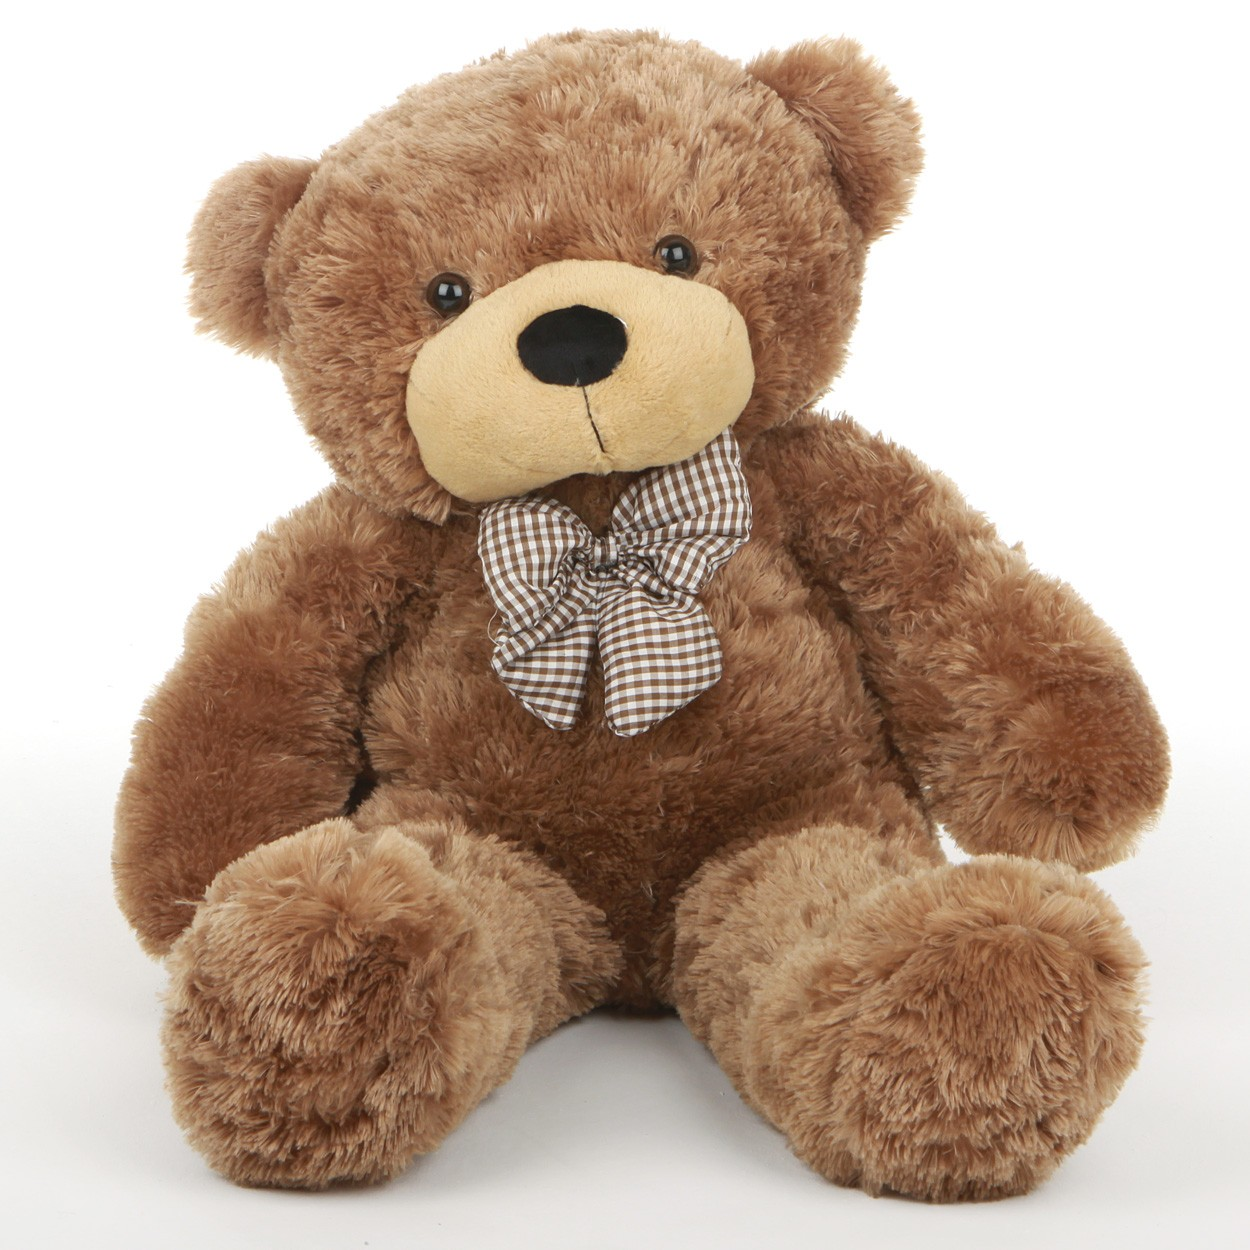 79 - Teddy Bear Soft Toy